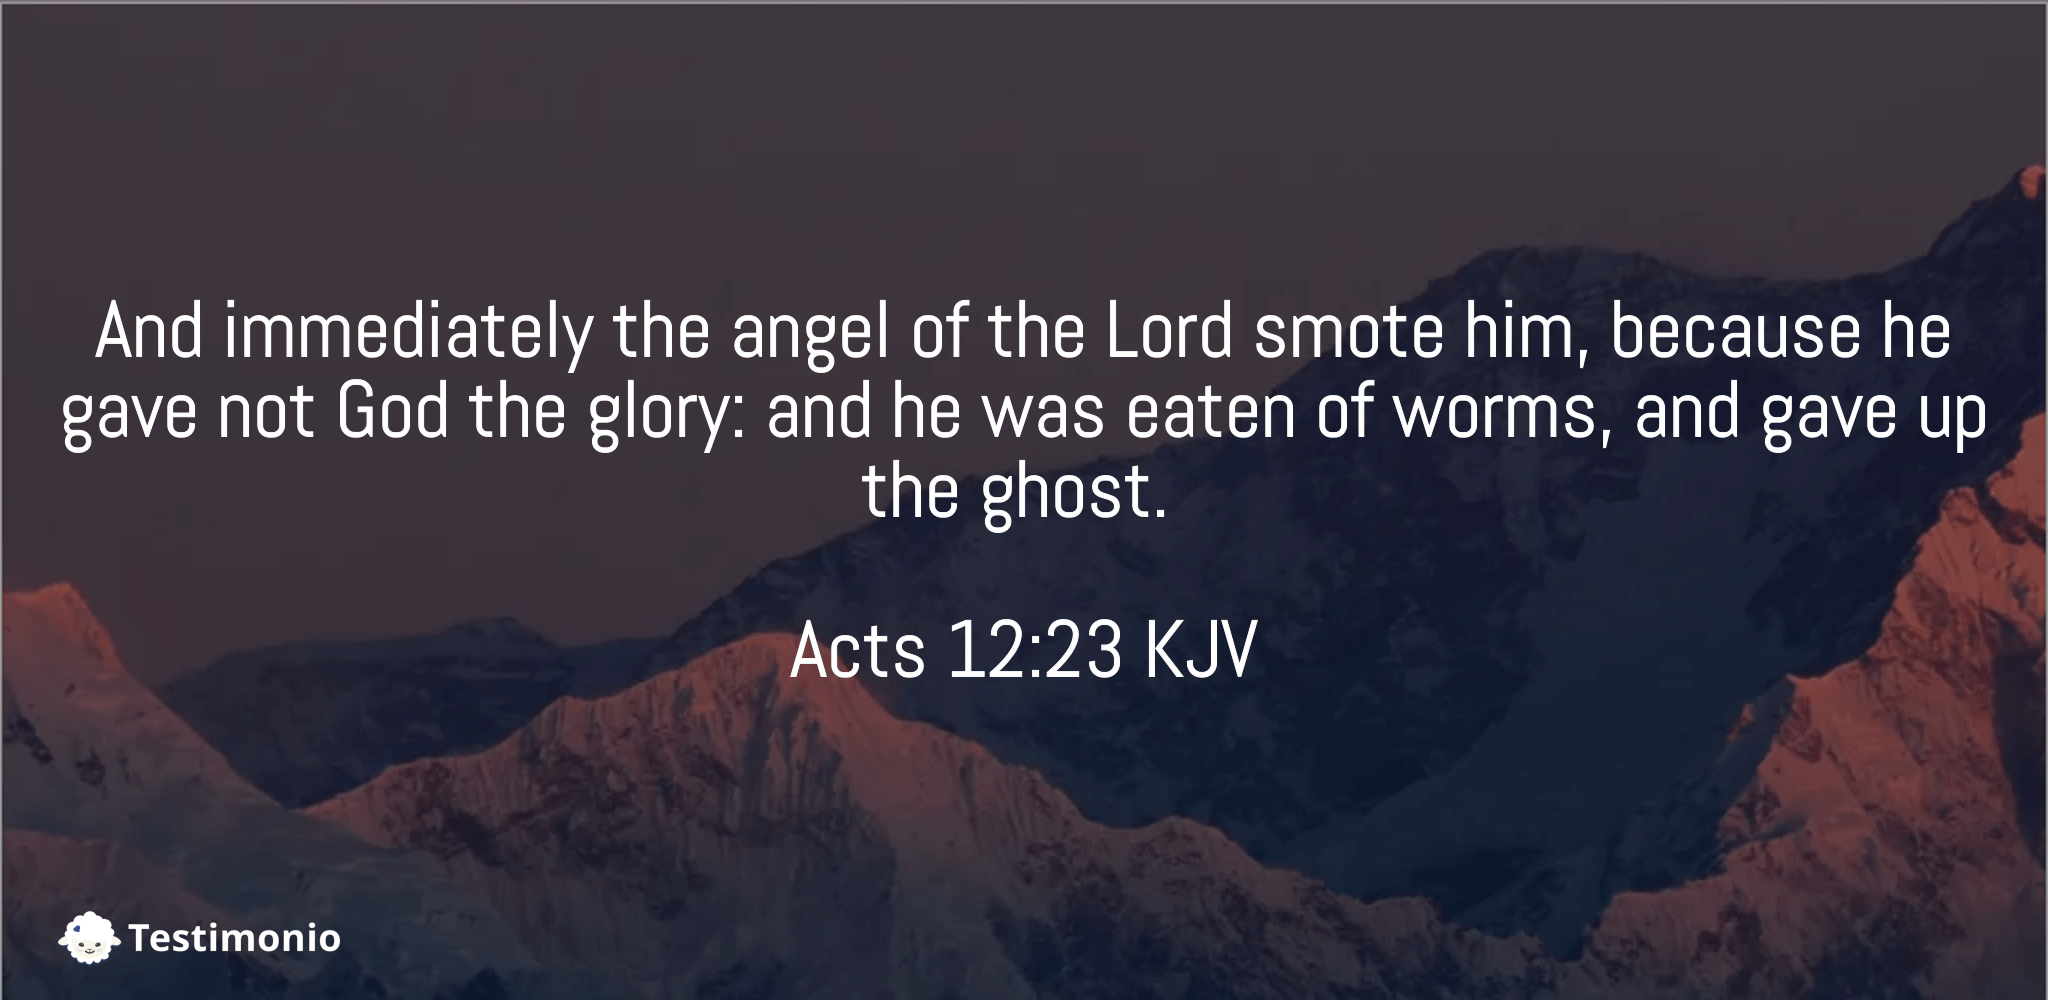 Acts 12:23